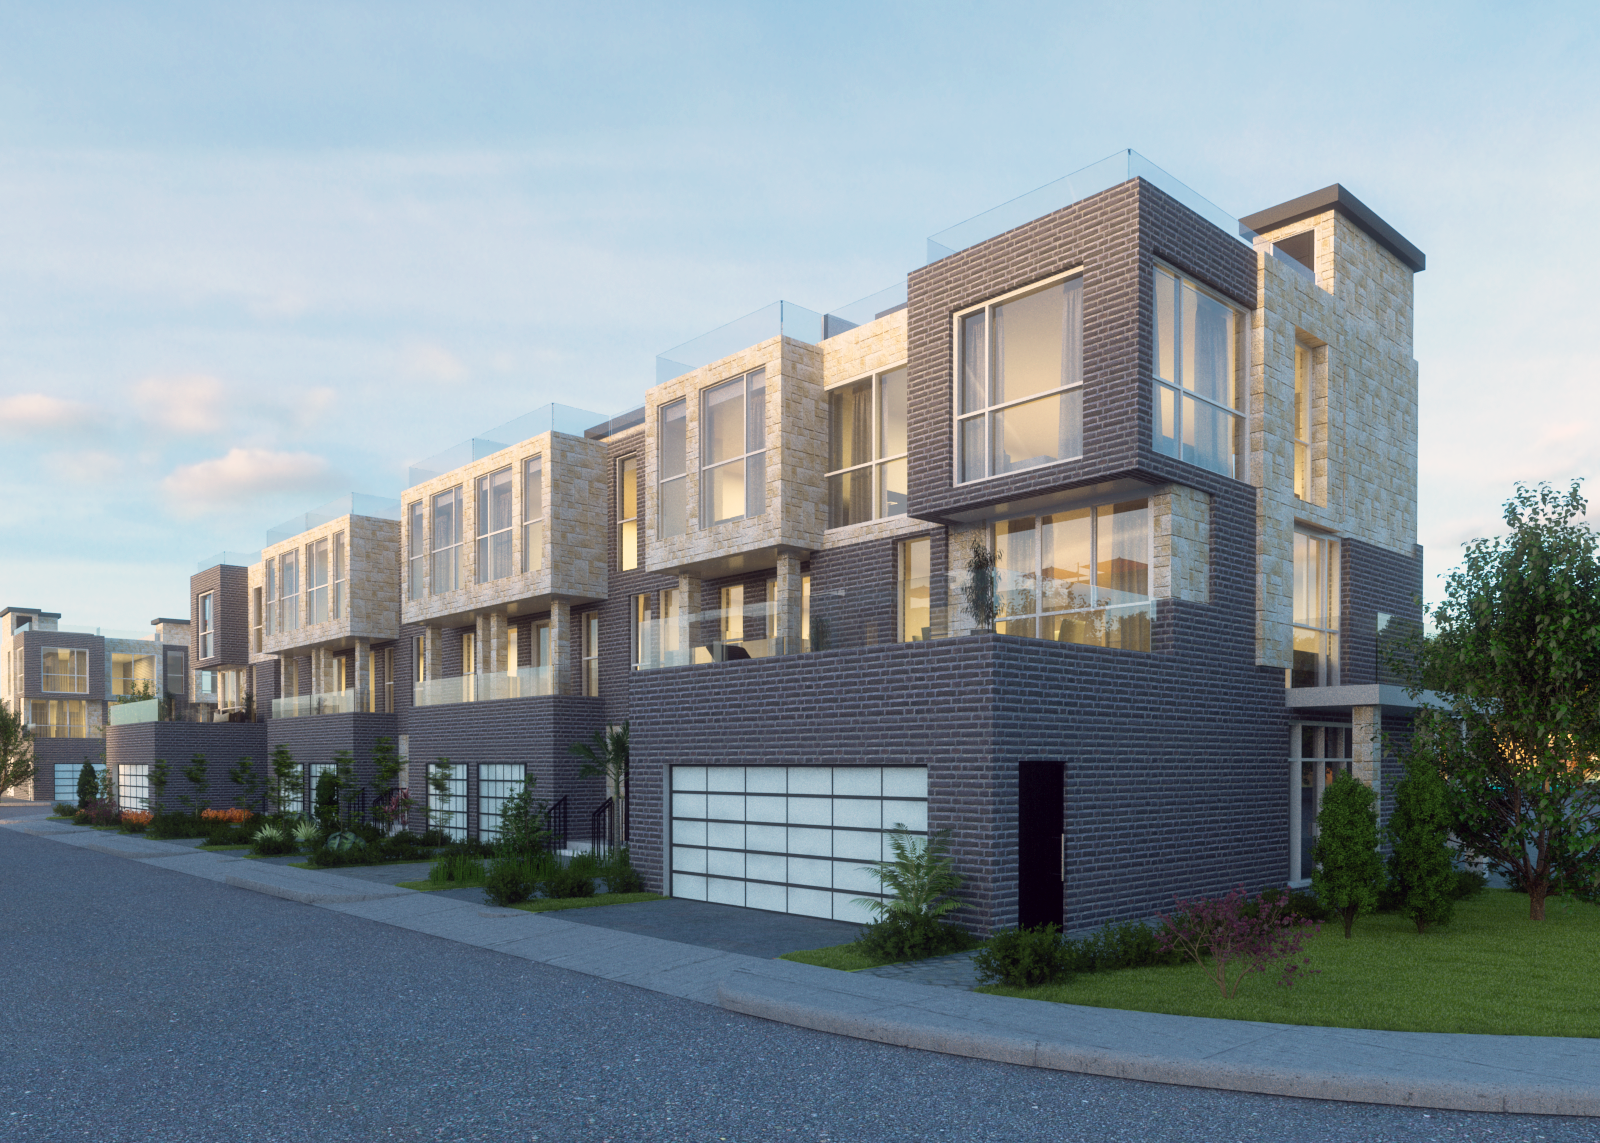 townhouse at dusk - 3d rendering